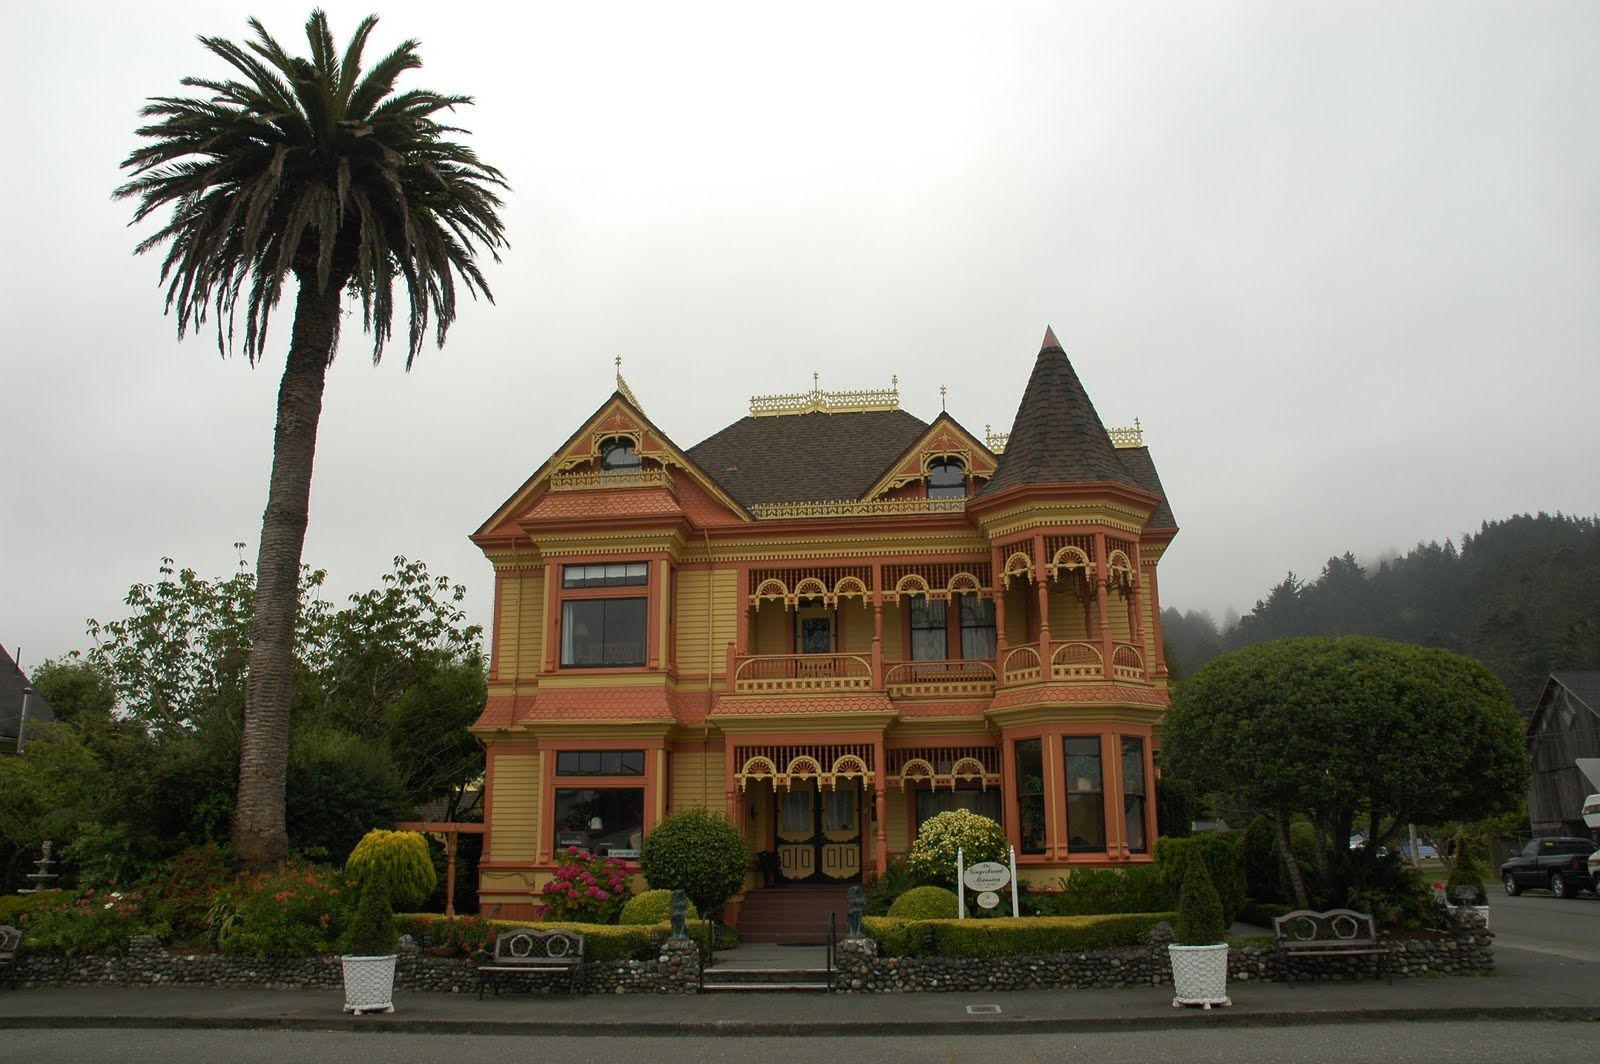 ... Mansion - Ferndale, CA | 50 States Bucket List ... Check